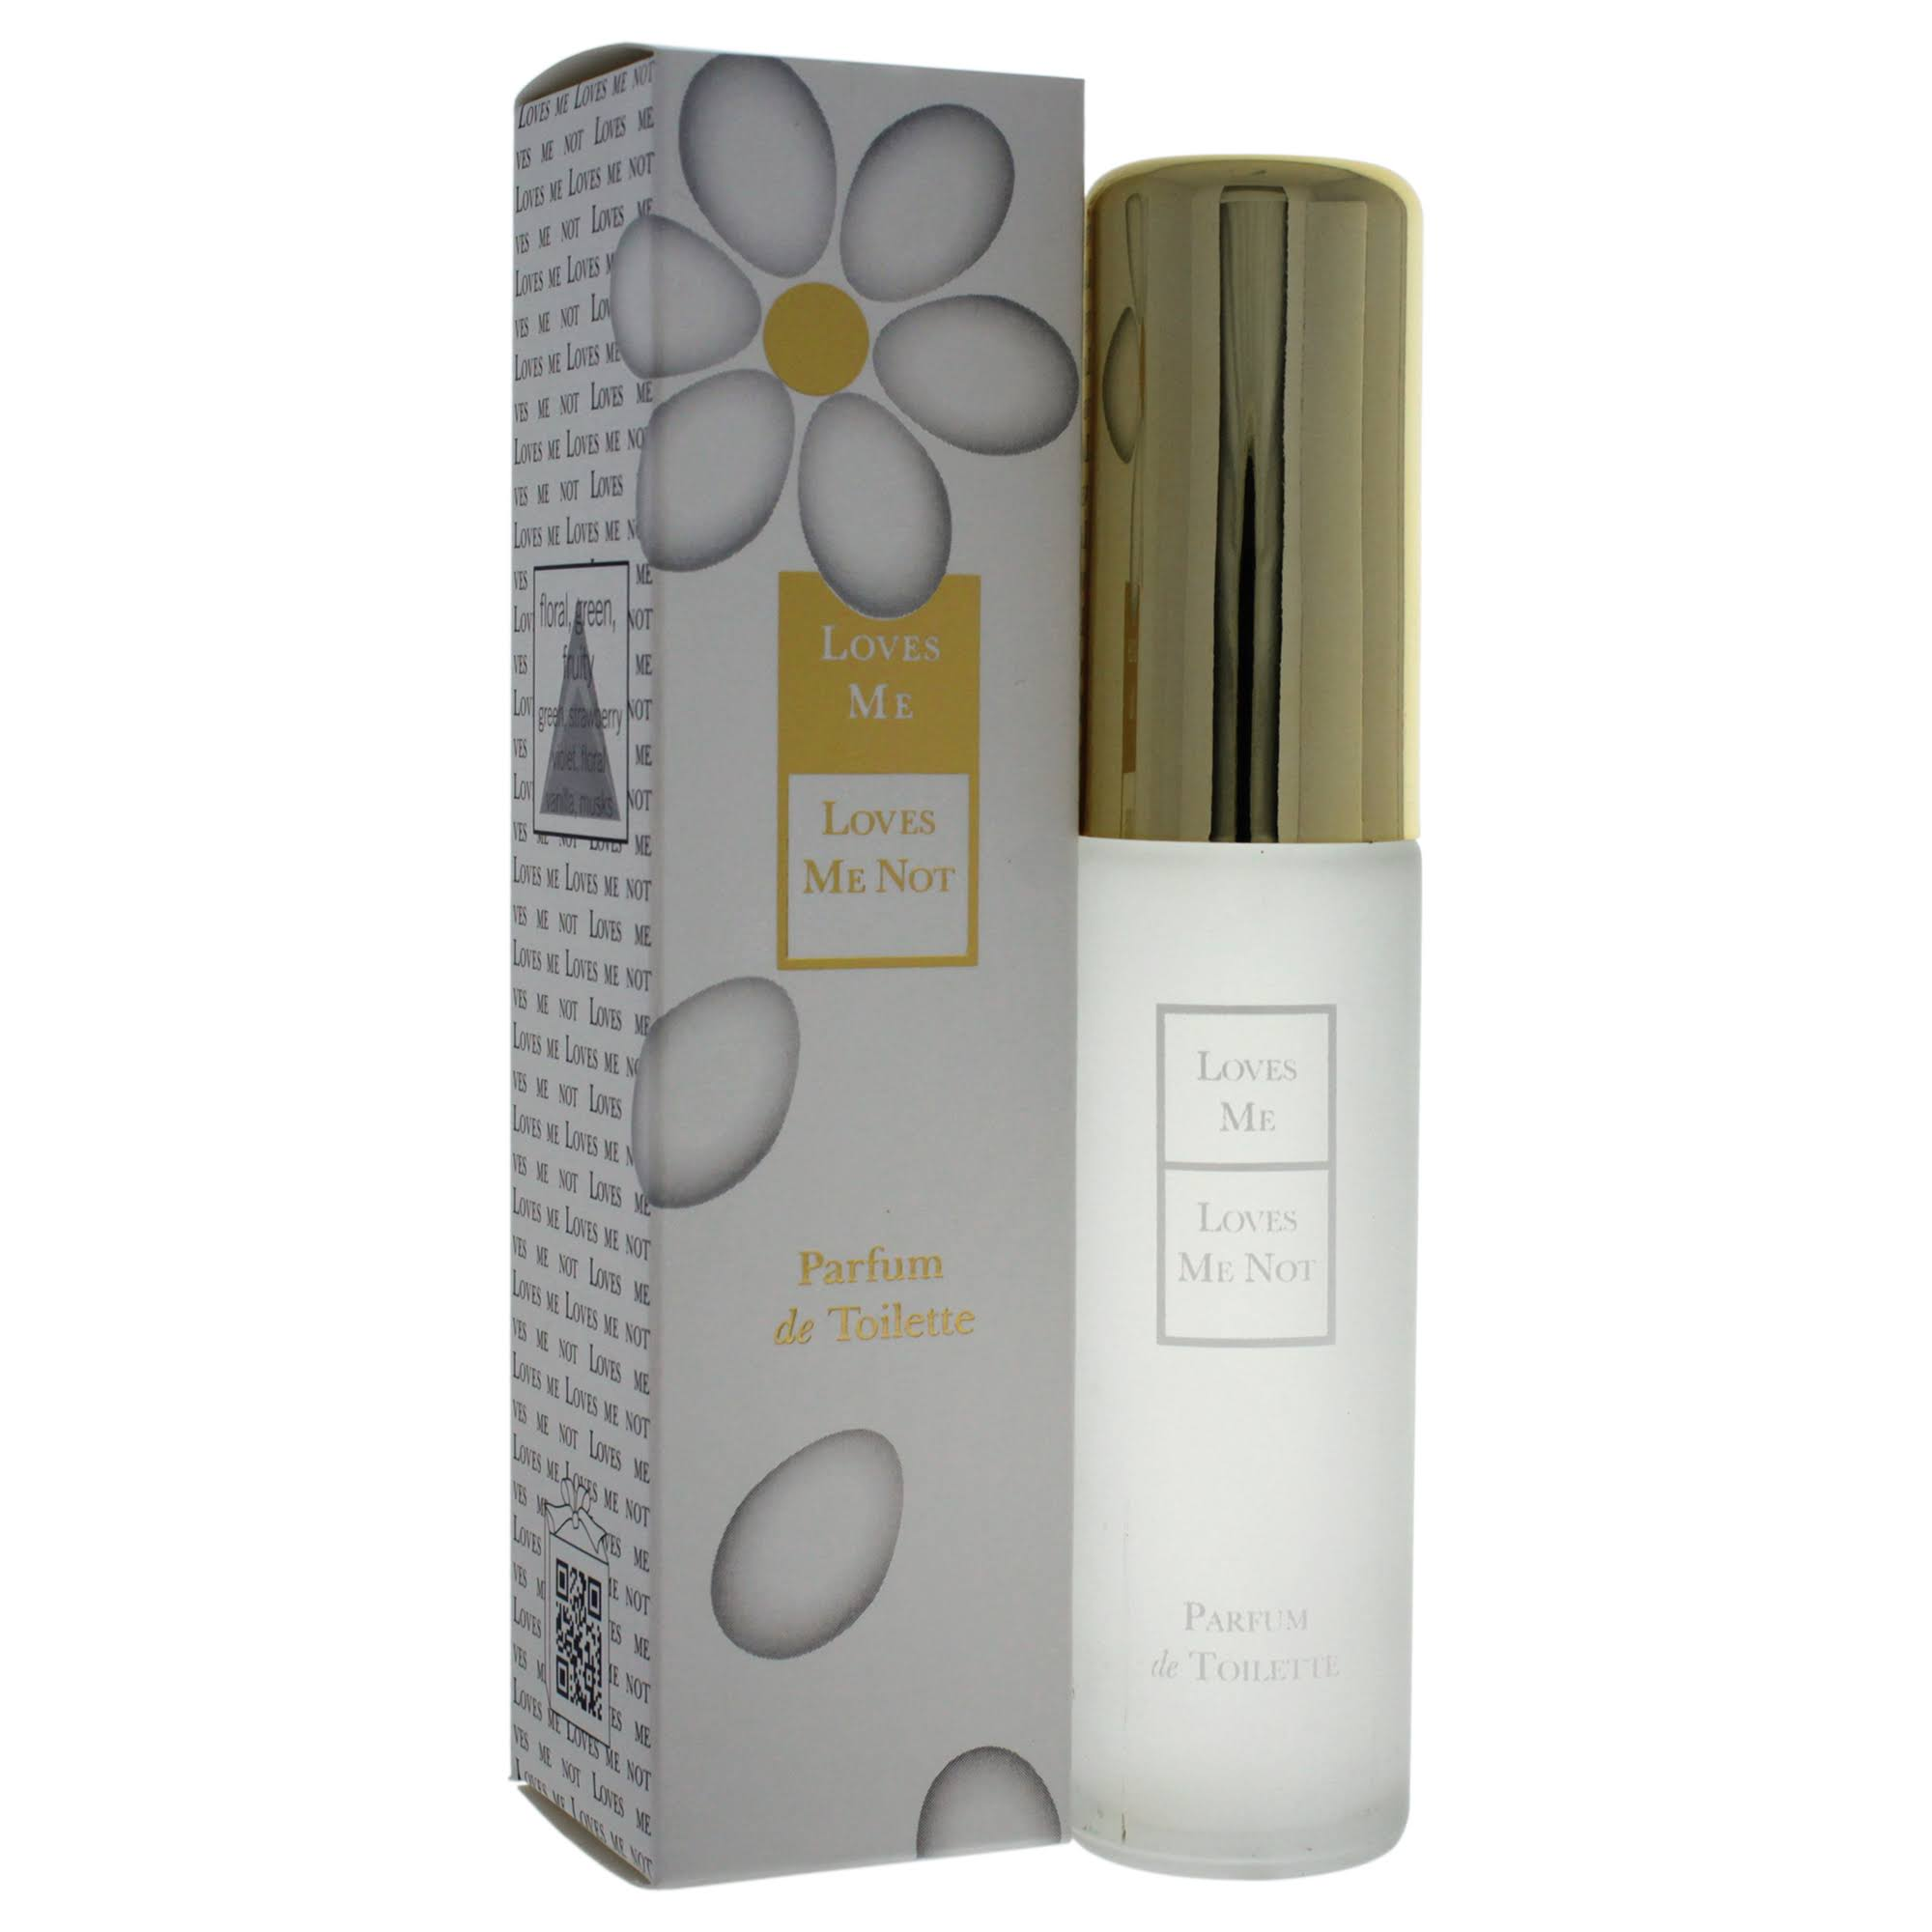 Loves Me Loves Me Not Parfum de Toilette 50ml